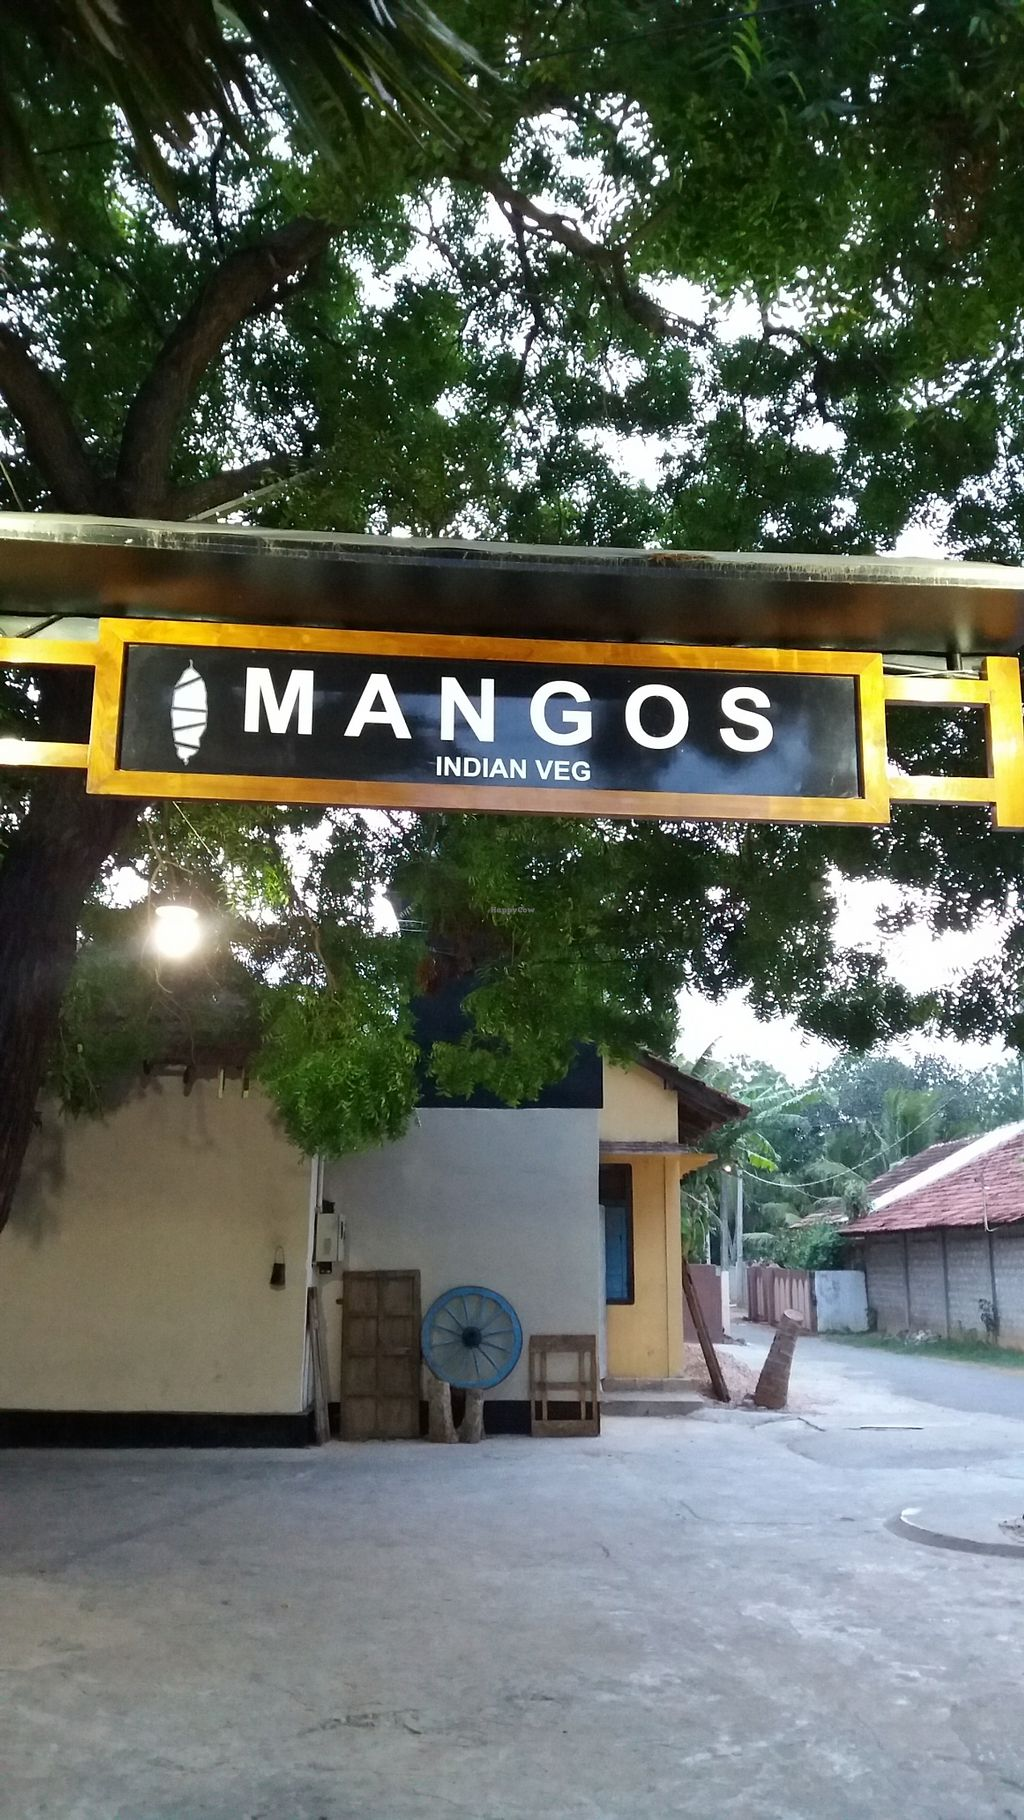 "Photo of Mangos Indian Veg Restaurant  by <a href=""/members/profile/huawhenua"">huawhenua</a> <br/>Entrance to Mangos Indian Veg Restaurant <br/> July 1, 2017  - <a href='/contact/abuse/image/94842/275443'>Report</a>"